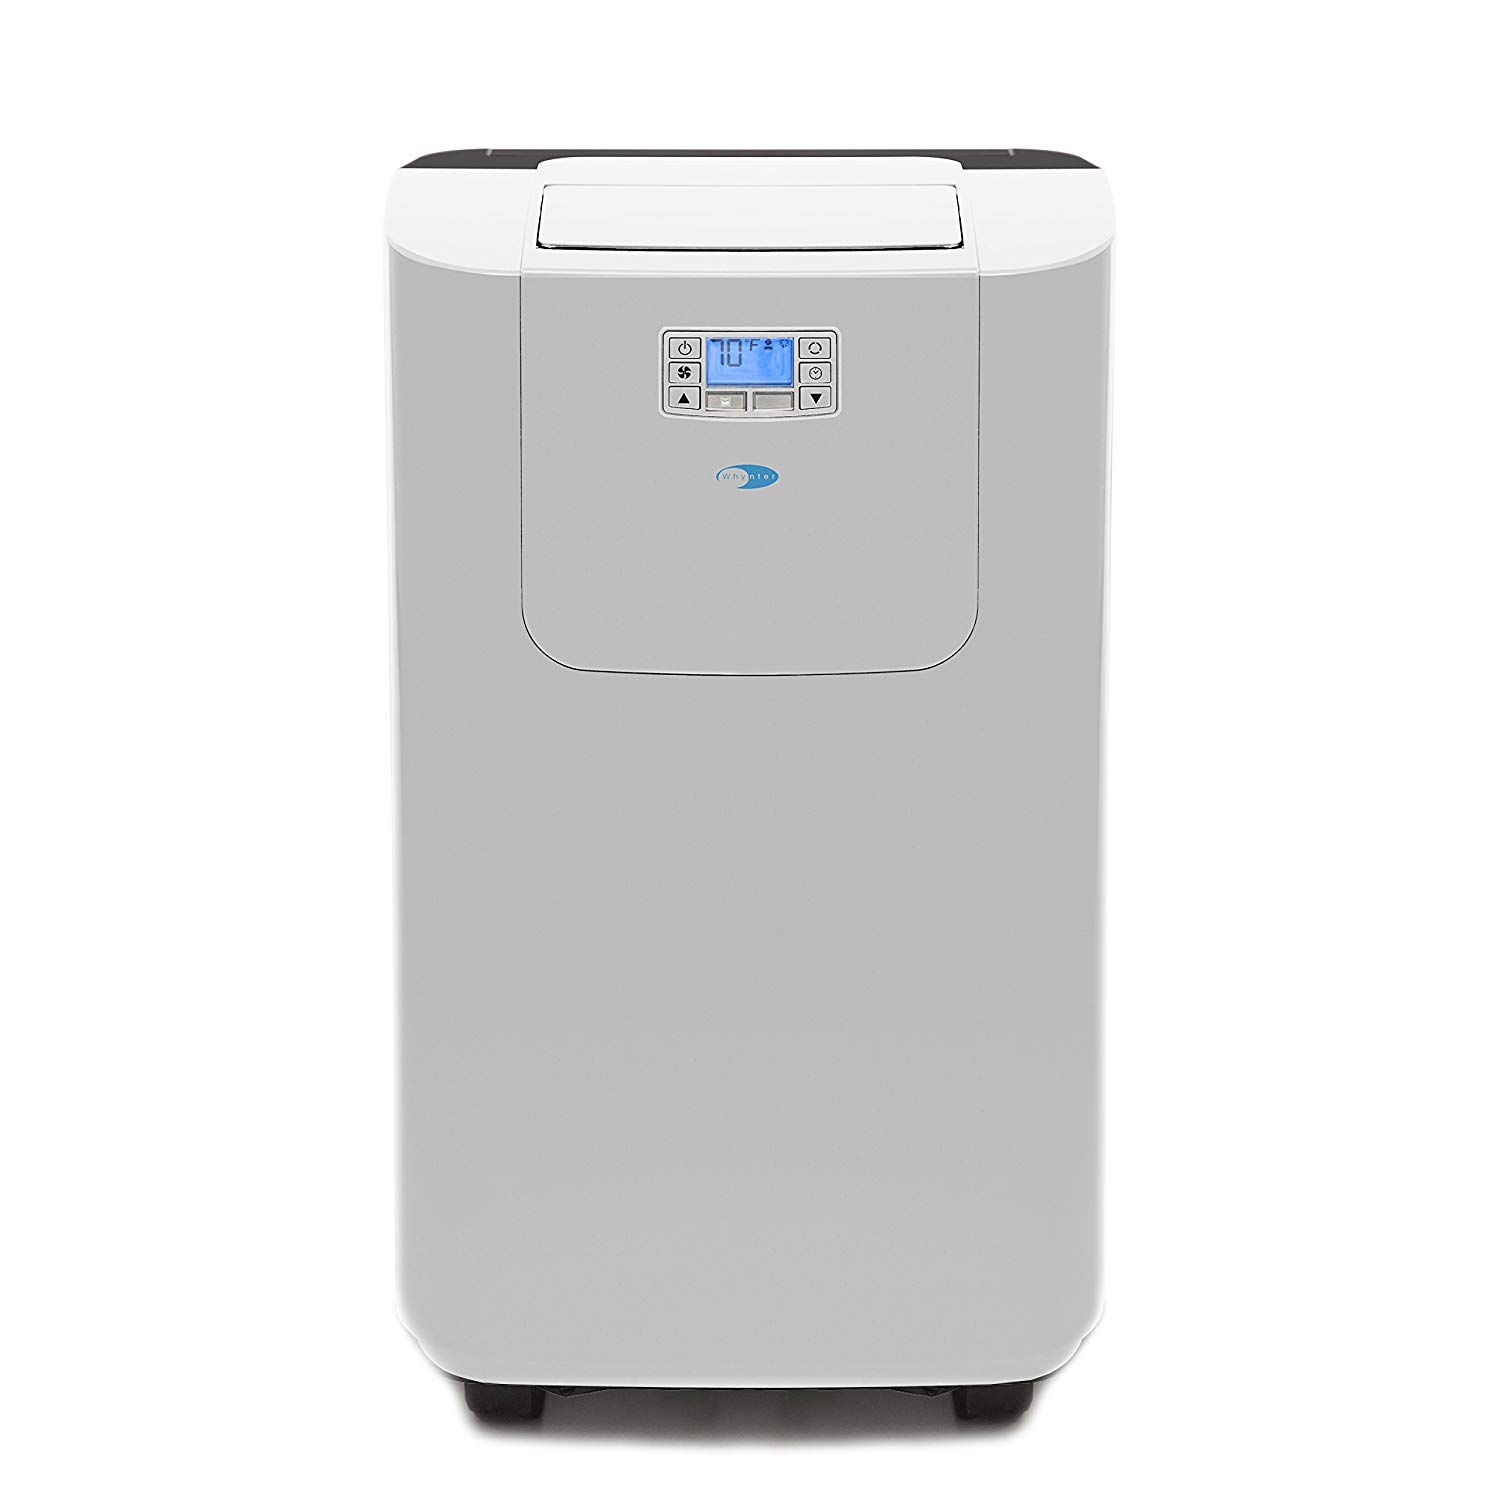 Whynter Elite ARC-122DS 12,000 BTU Dual Hose Portable Air Conditioner, Dehumidifier, Fan with Activated Carbon Filter plus Storage bag for Rooms up to 400 sq ft